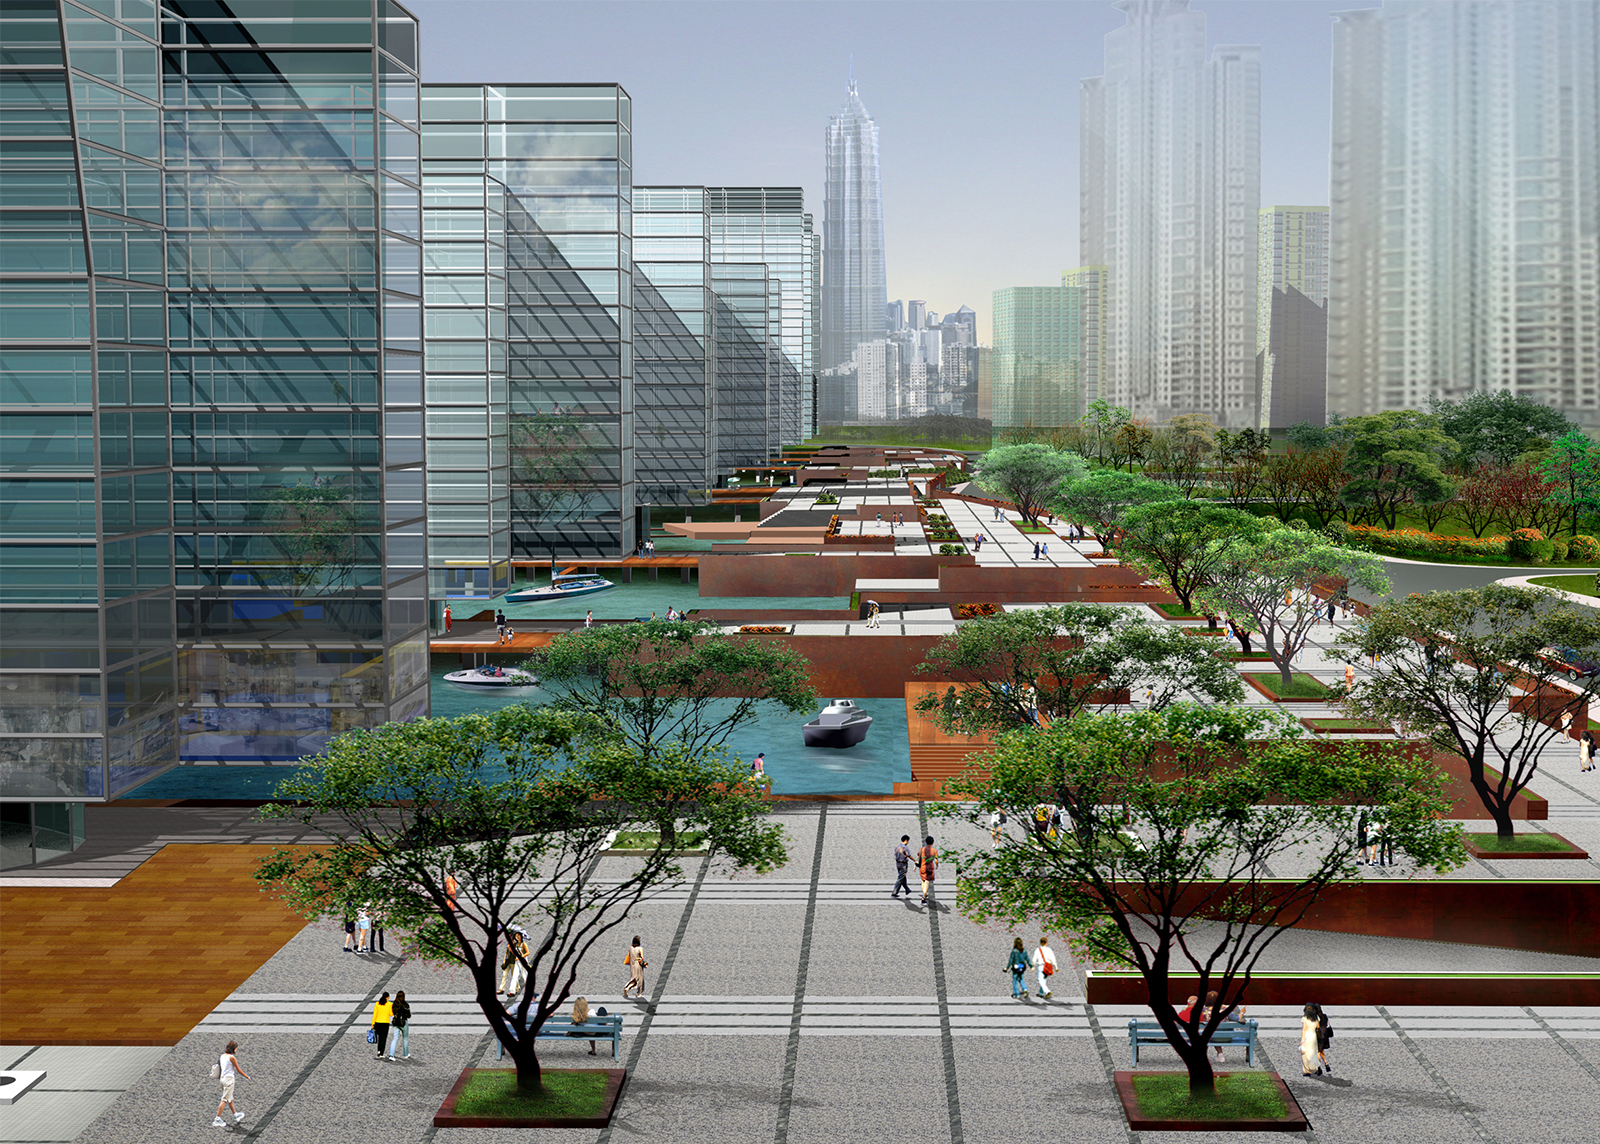 上海世博村(E18地块)规划及城市设计_2010 Shanghai EXPO Village Planning_Left_01.jpg